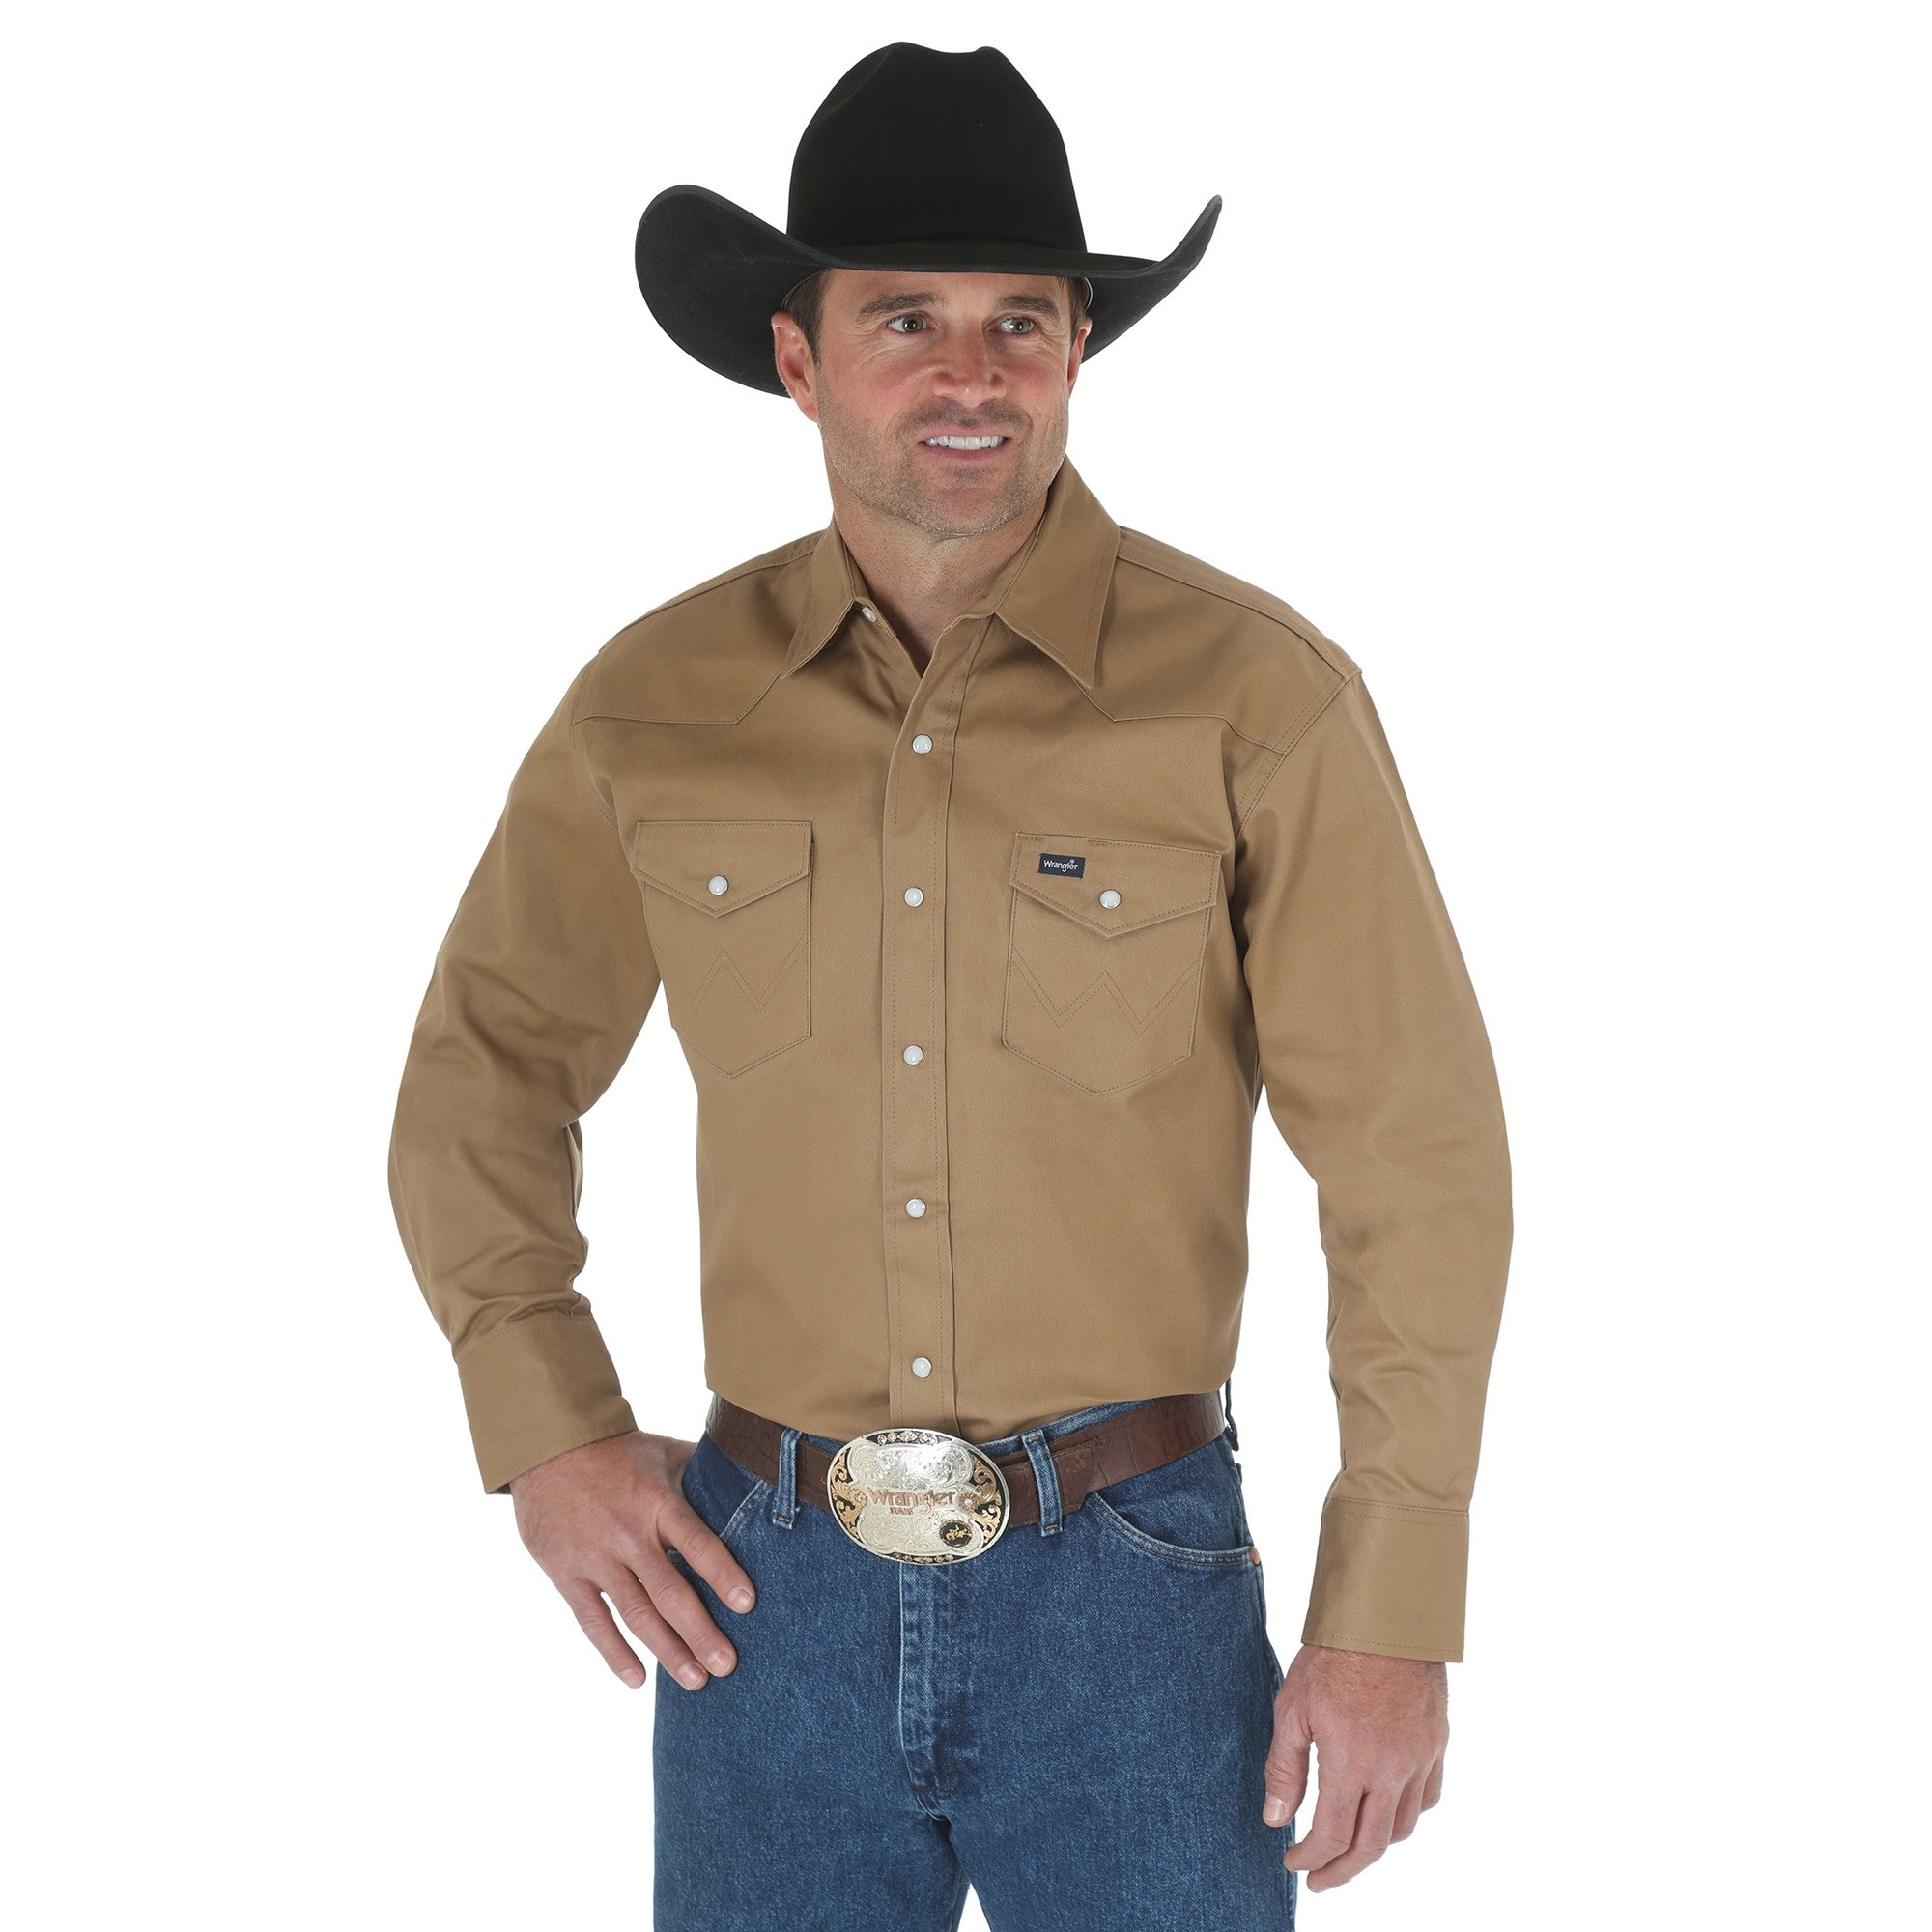 Men's Wrangler Authentic Cowboy Cut Snap Front Work Shirt #MS71519 (Big and Tall)